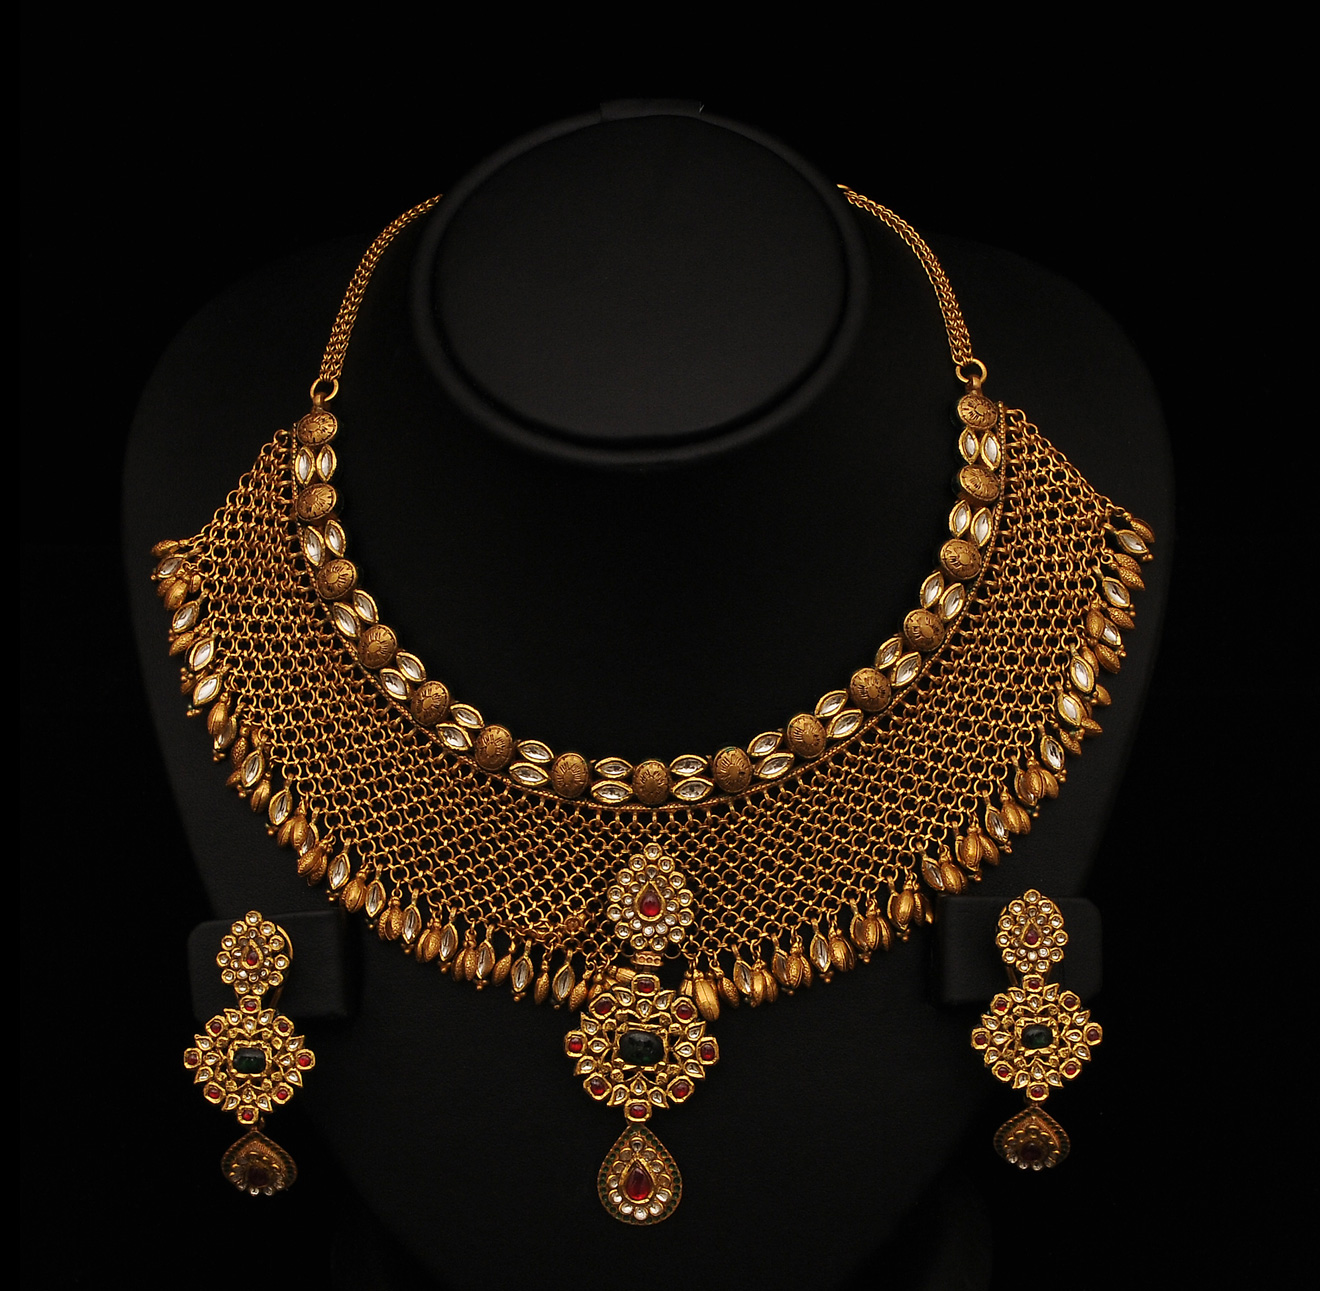 Kundan Jewellery Necklace 39 S Designs SUDHAKAR GOLD WORKS